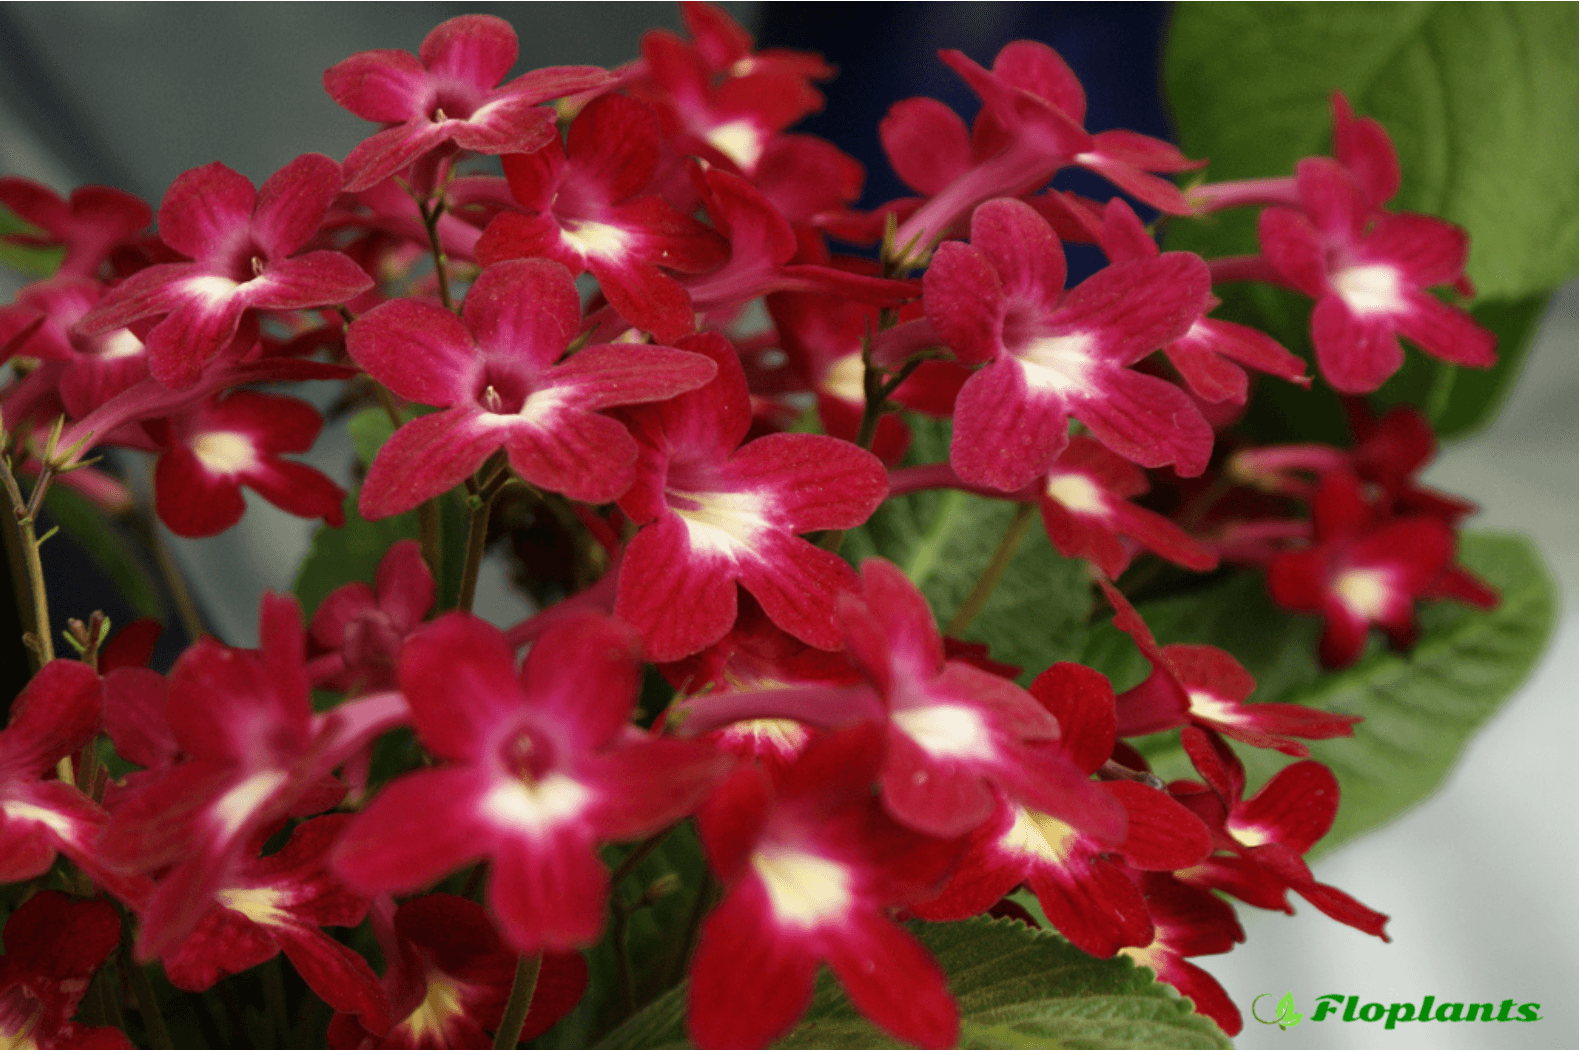 Streptocarpus Texas Hot Chili.